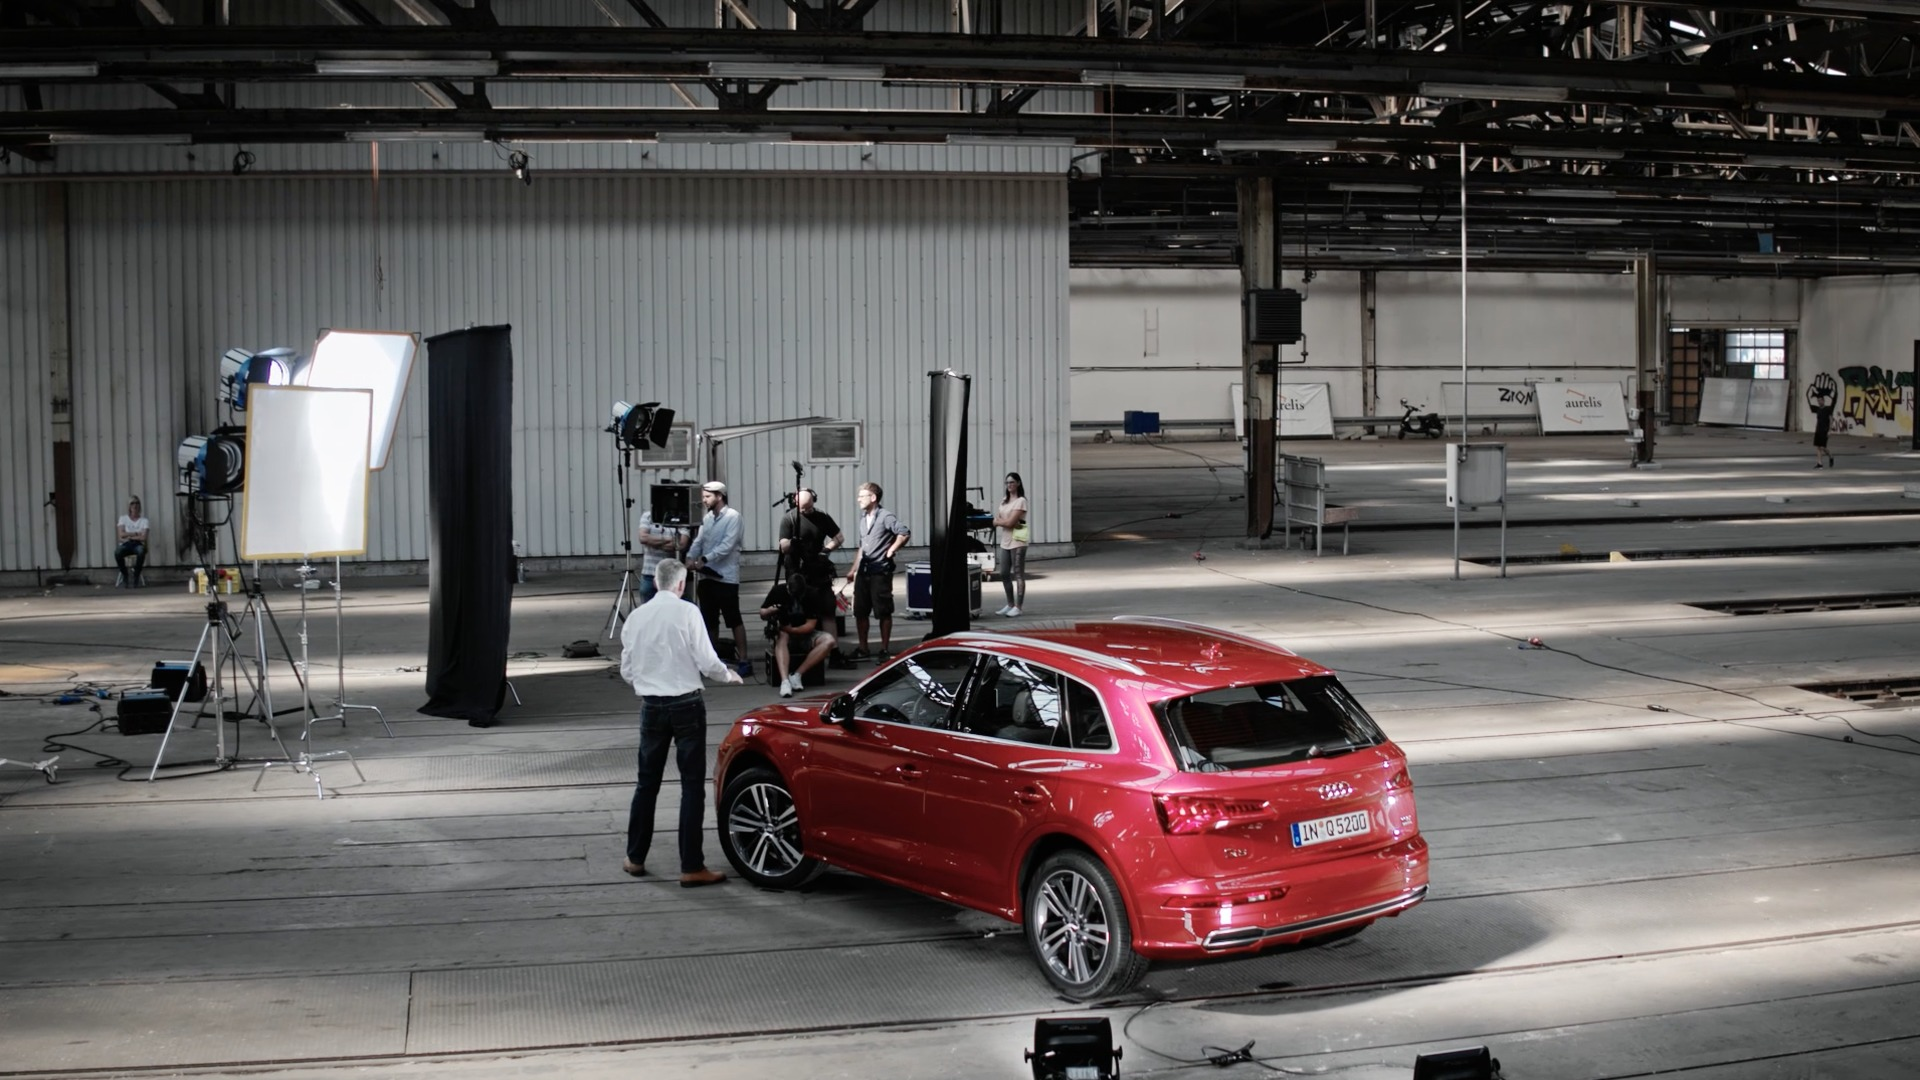 World premiere - The new Audi Q5